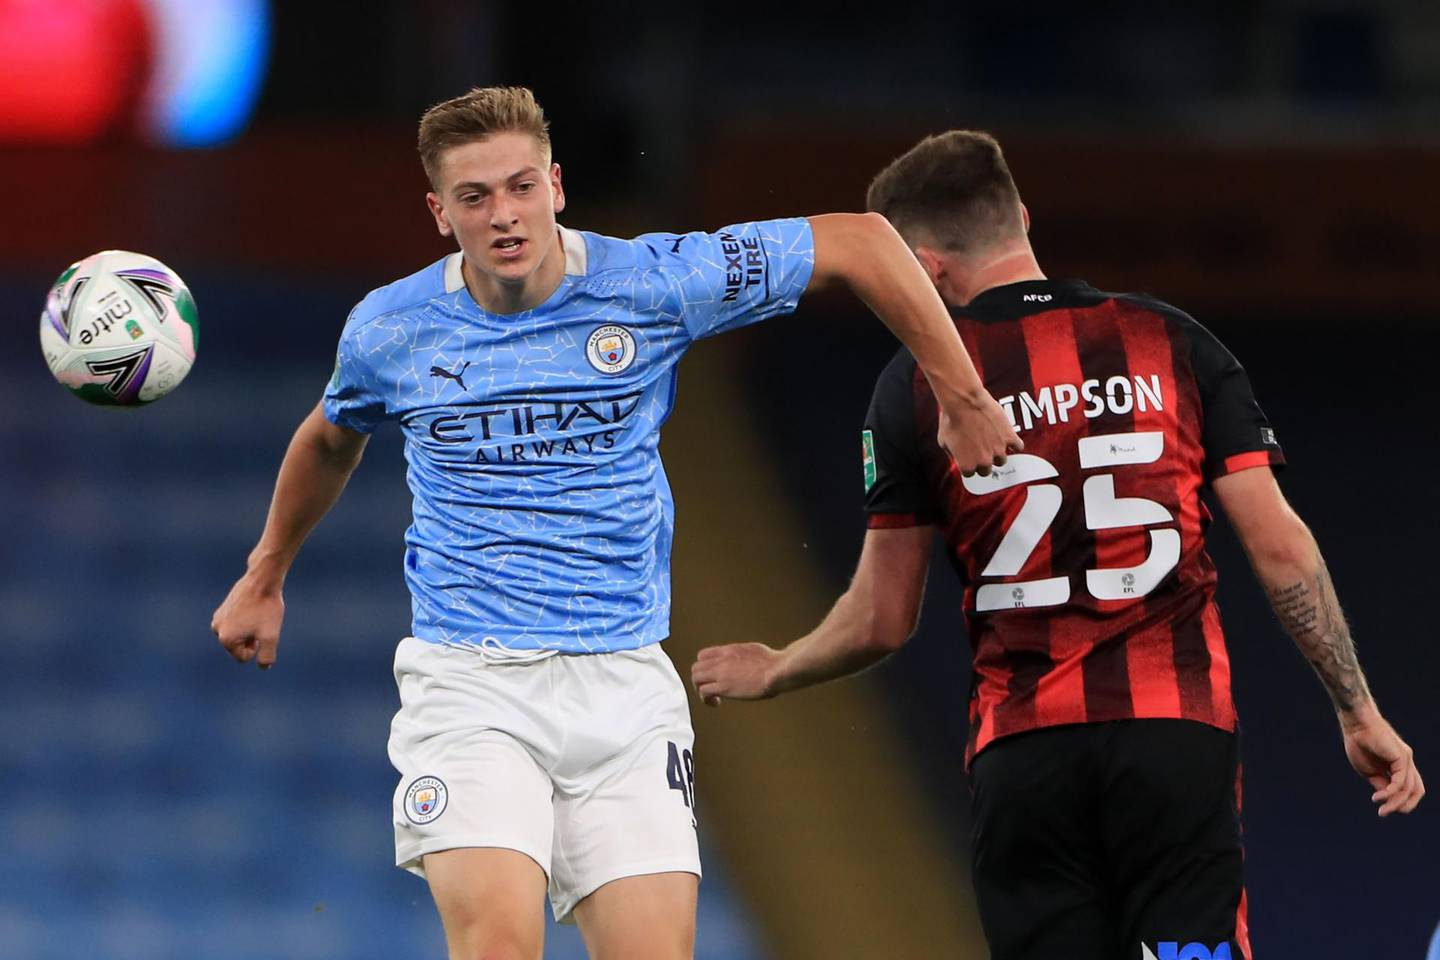 Manchester City's English midfielder Liam Delap (L) vies with Bournemouth's English defender Jack Simpson (R) during the English League Cup third round football match between Manchester City and Bournemouth at the Etihad Stadium in Manchester, north-west of England, on September 24, 2020.   - RESTRICTED TO EDITORIAL USE. No use with unauthorized audio, video, data, fixture lists, club/league logos or 'live' services. Online in-match use limited to 120 images. An additional 40 images may be used in extra time. No video emulation. Social media in-match use limited to 120 images. An additional 40 images may be used in extra time. No use in betting publications, games or single club/league/player publications.  / AFP / POOL / MIKE EGERTON / RESTRICTED TO EDITORIAL USE. No use with unauthorized audio, video, data, fixture lists, club/league logos or 'live' services. Online in-match use limited to 120 images. An additional 40 images may be used in extra time. No video emulation. Social media in-match use limited to 120 images. An additional 40 images may be used in extra time. No use in betting publications, games or single club/league/player publications.